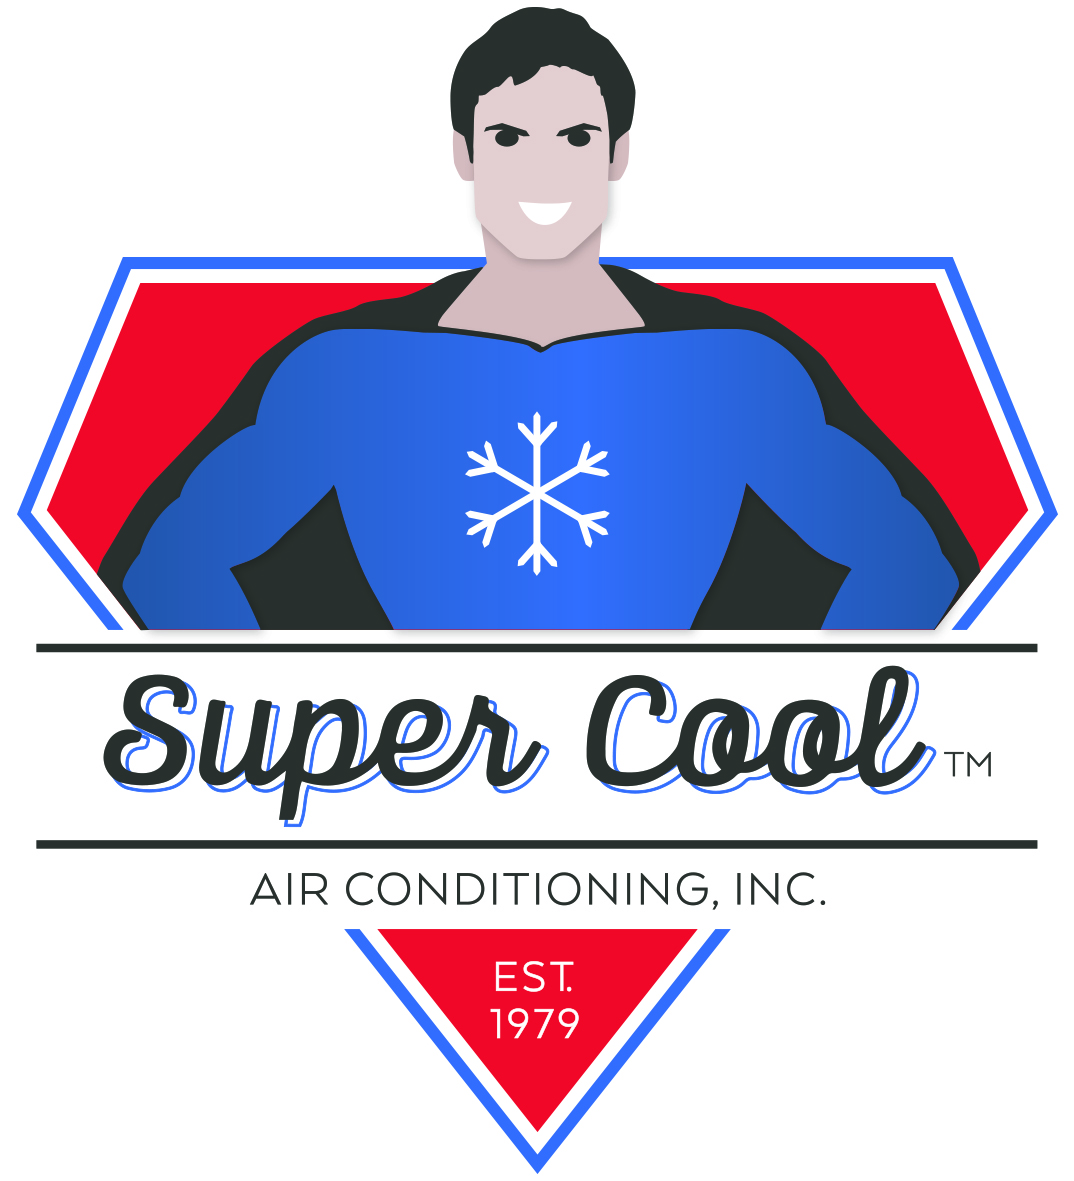 Super Cool Air Conditioning, Inc.